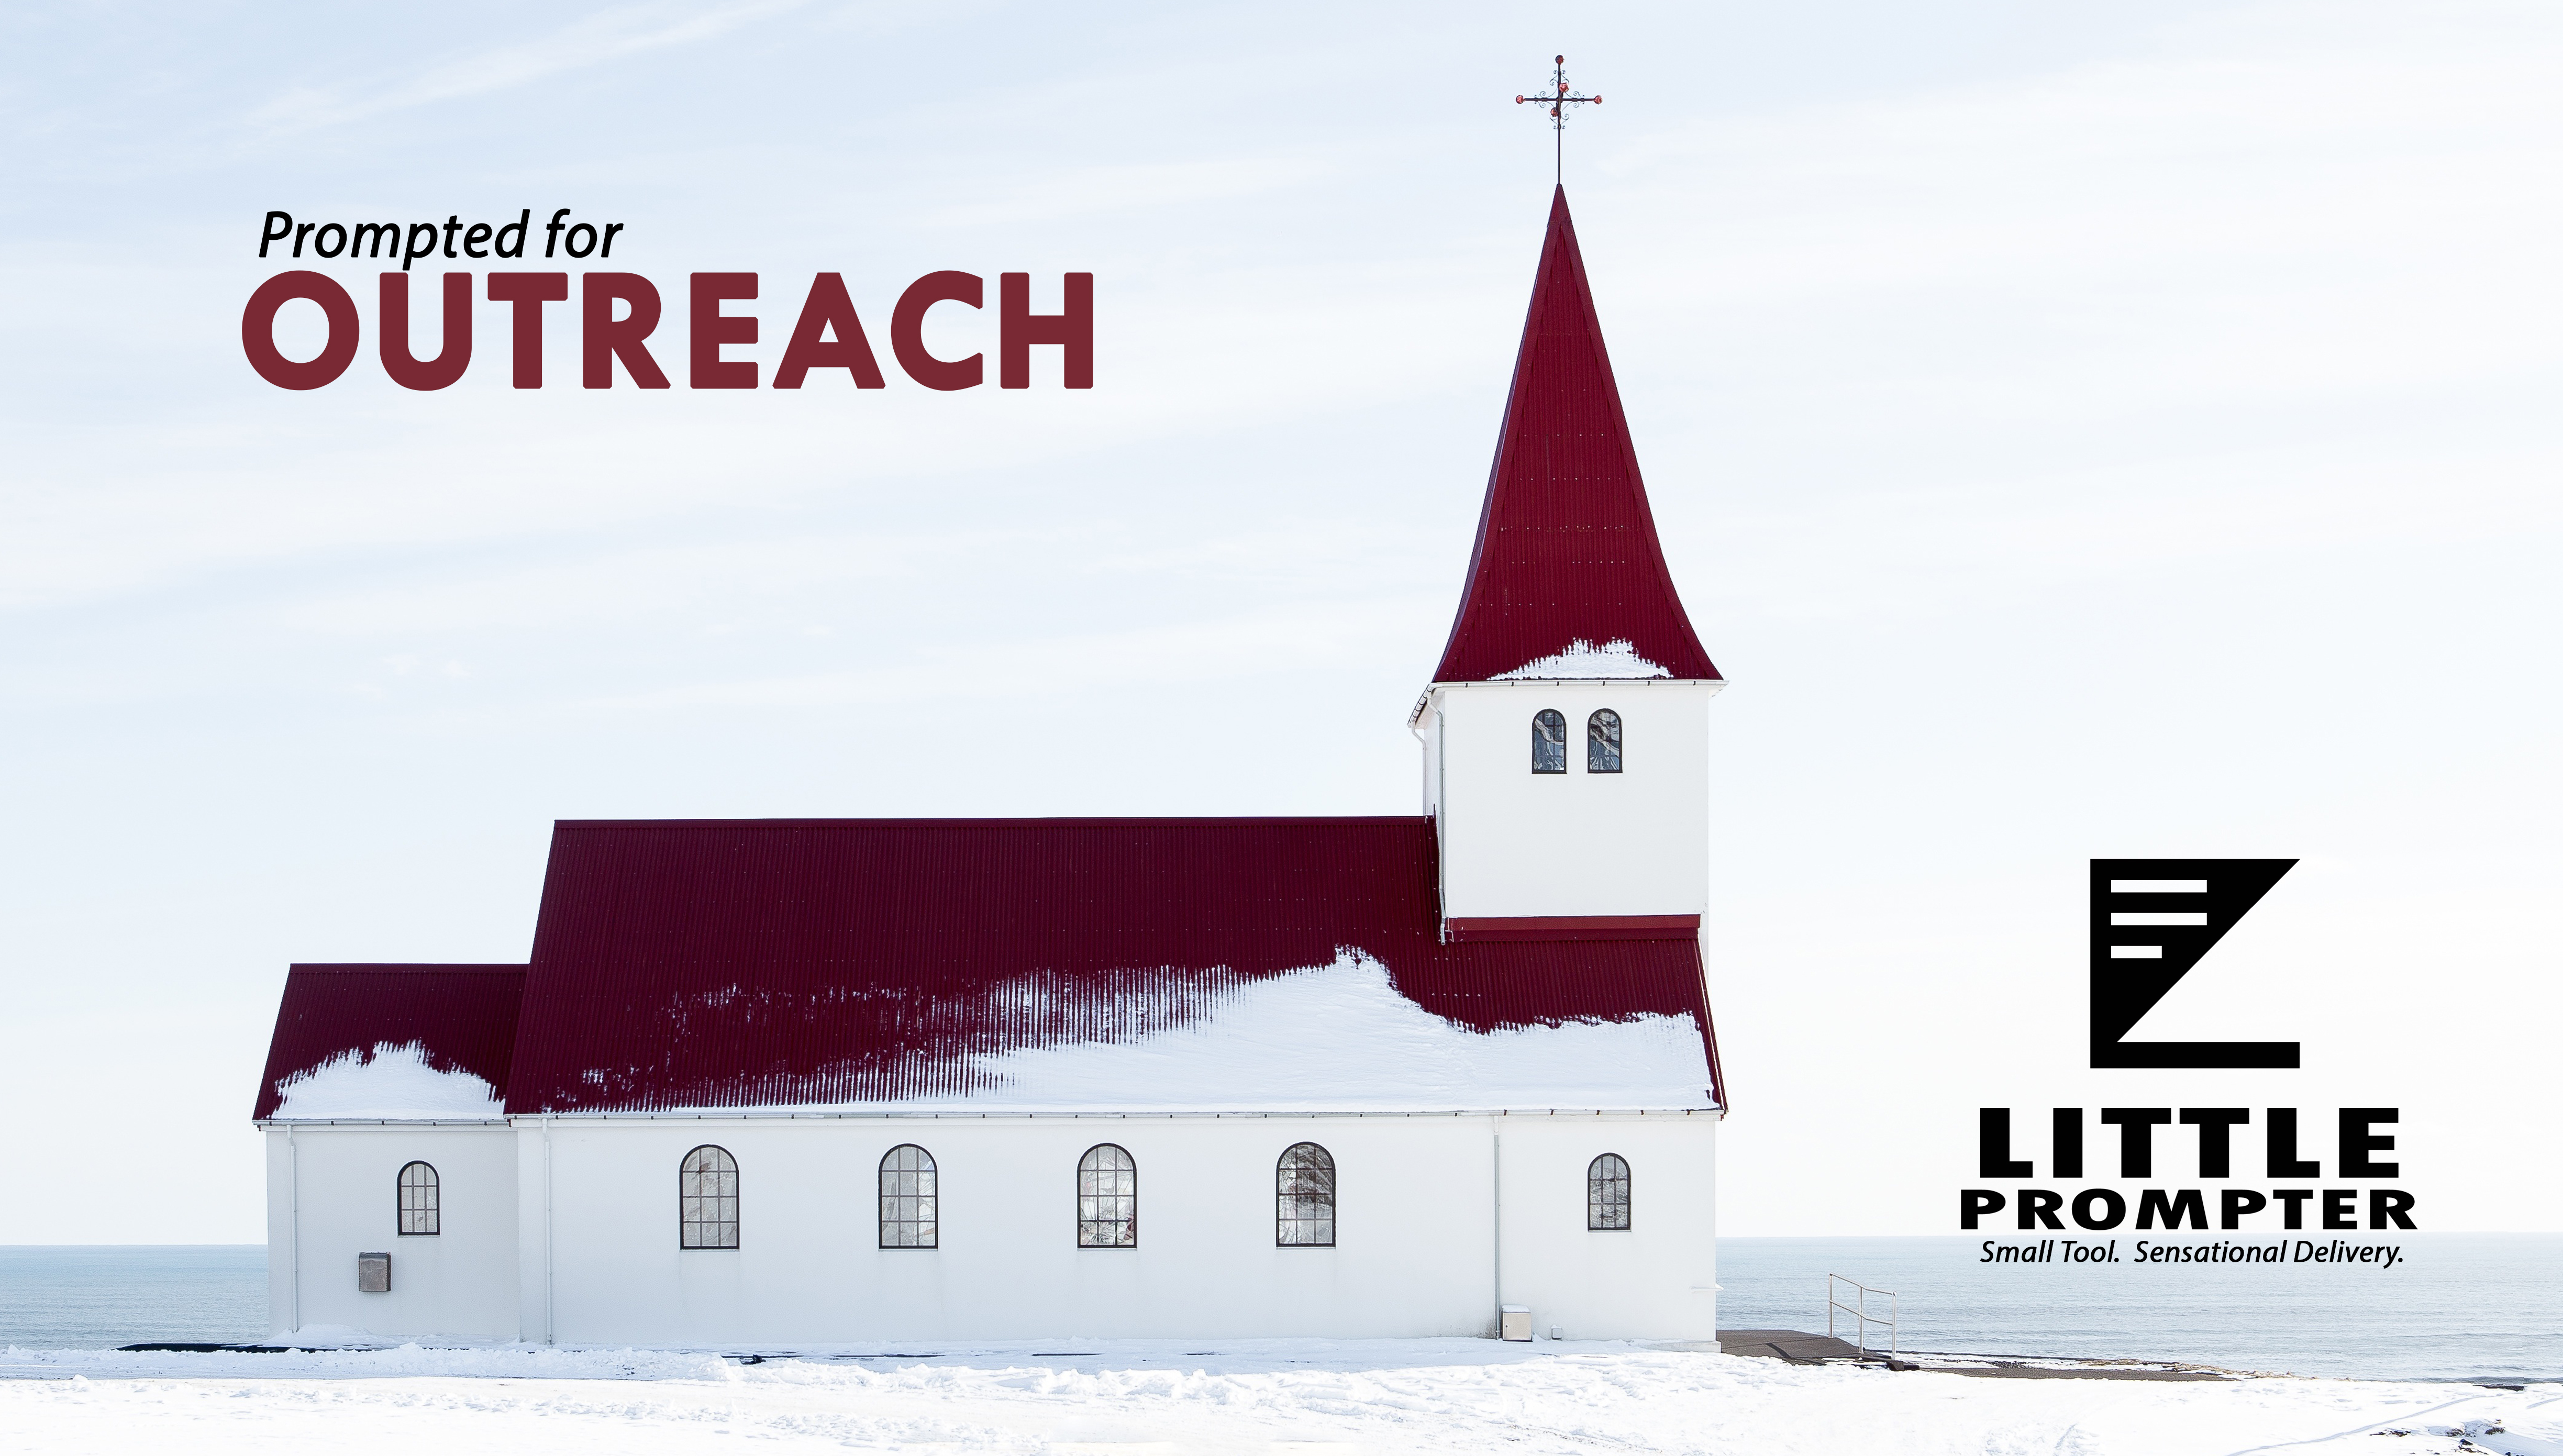 Contest_Church Charity Give-Away PROMPTED FOR OUTREACH_Complete_church-1081718